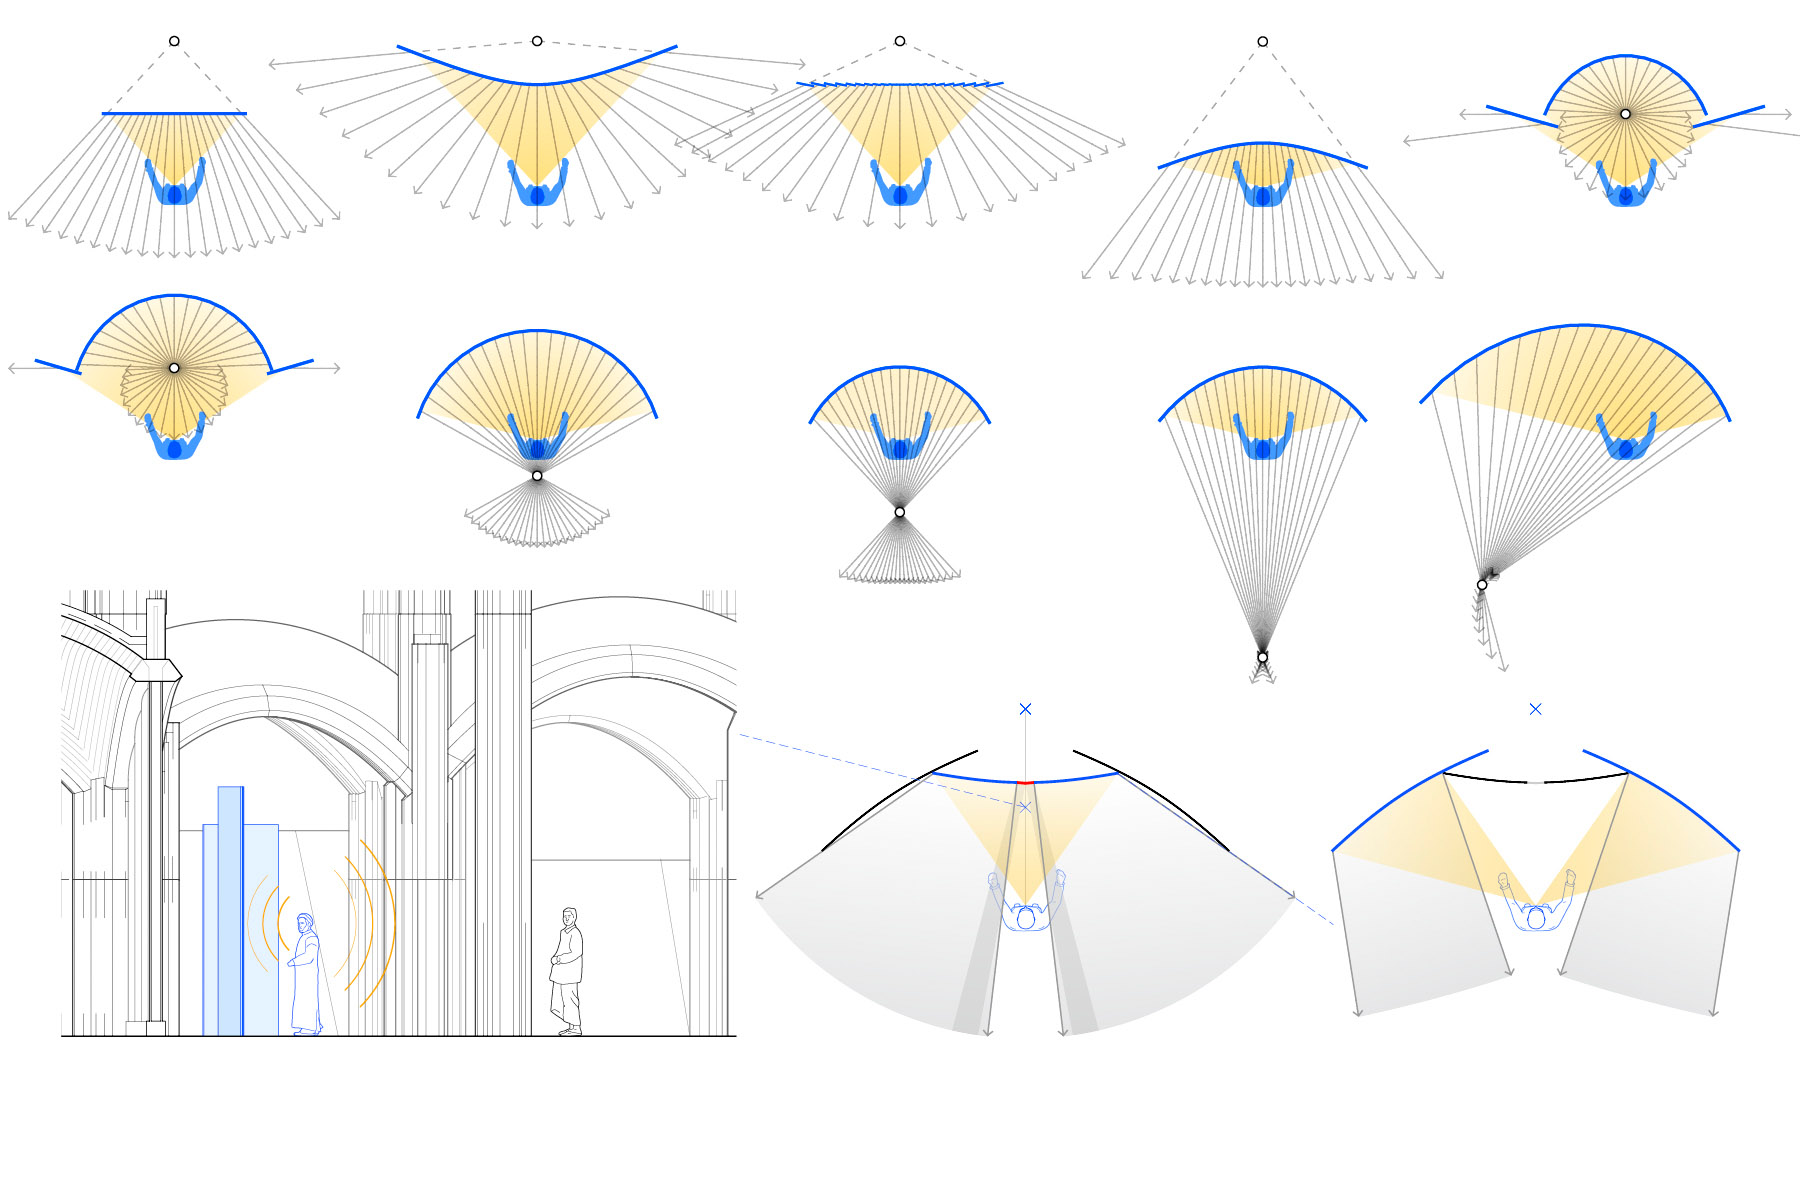 Geometry of the mihrab sound reflection niche